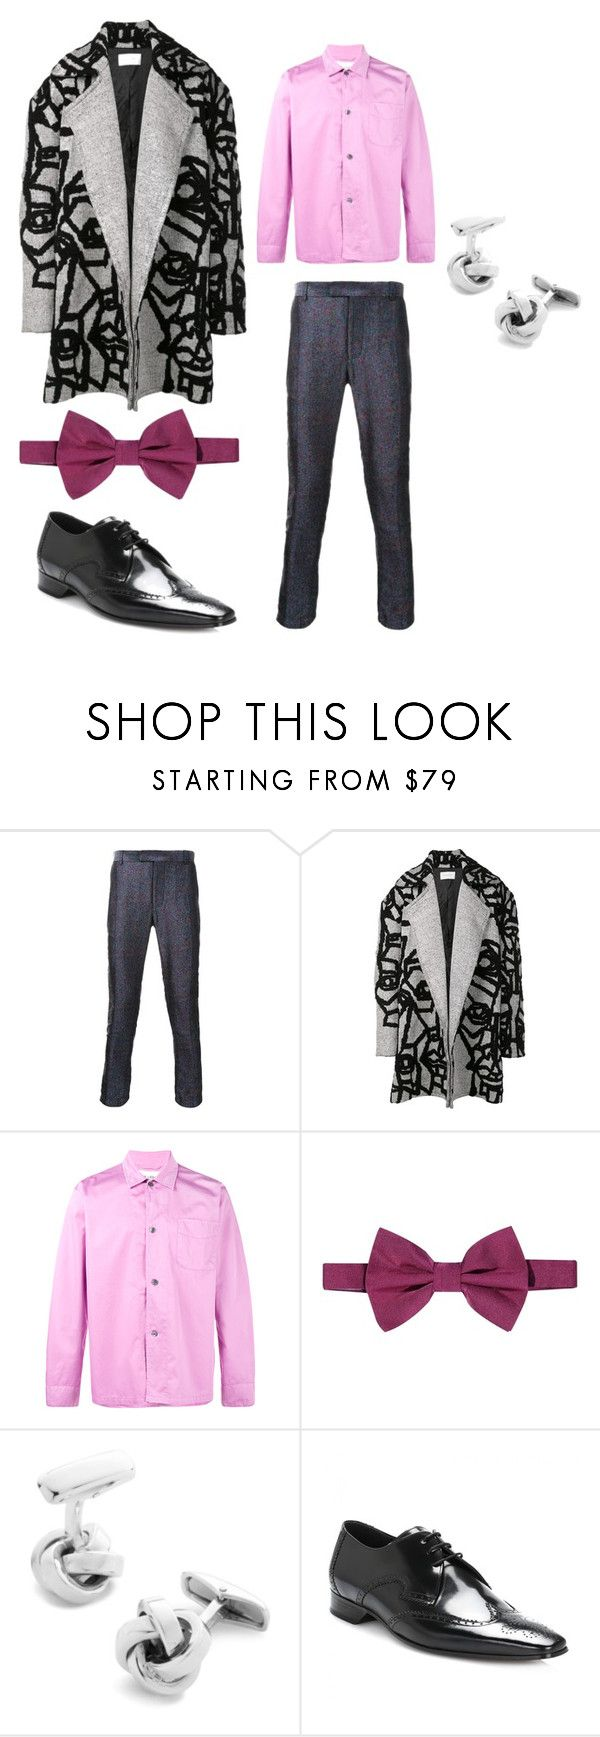 """Australian designer"" by sparklepieceblog on Polyvore featuring STRATEAS.CARLUCCI, Our Legacy, Armani Collezioni, Belfiore, Jeffery-West, men's fashion and menswear"